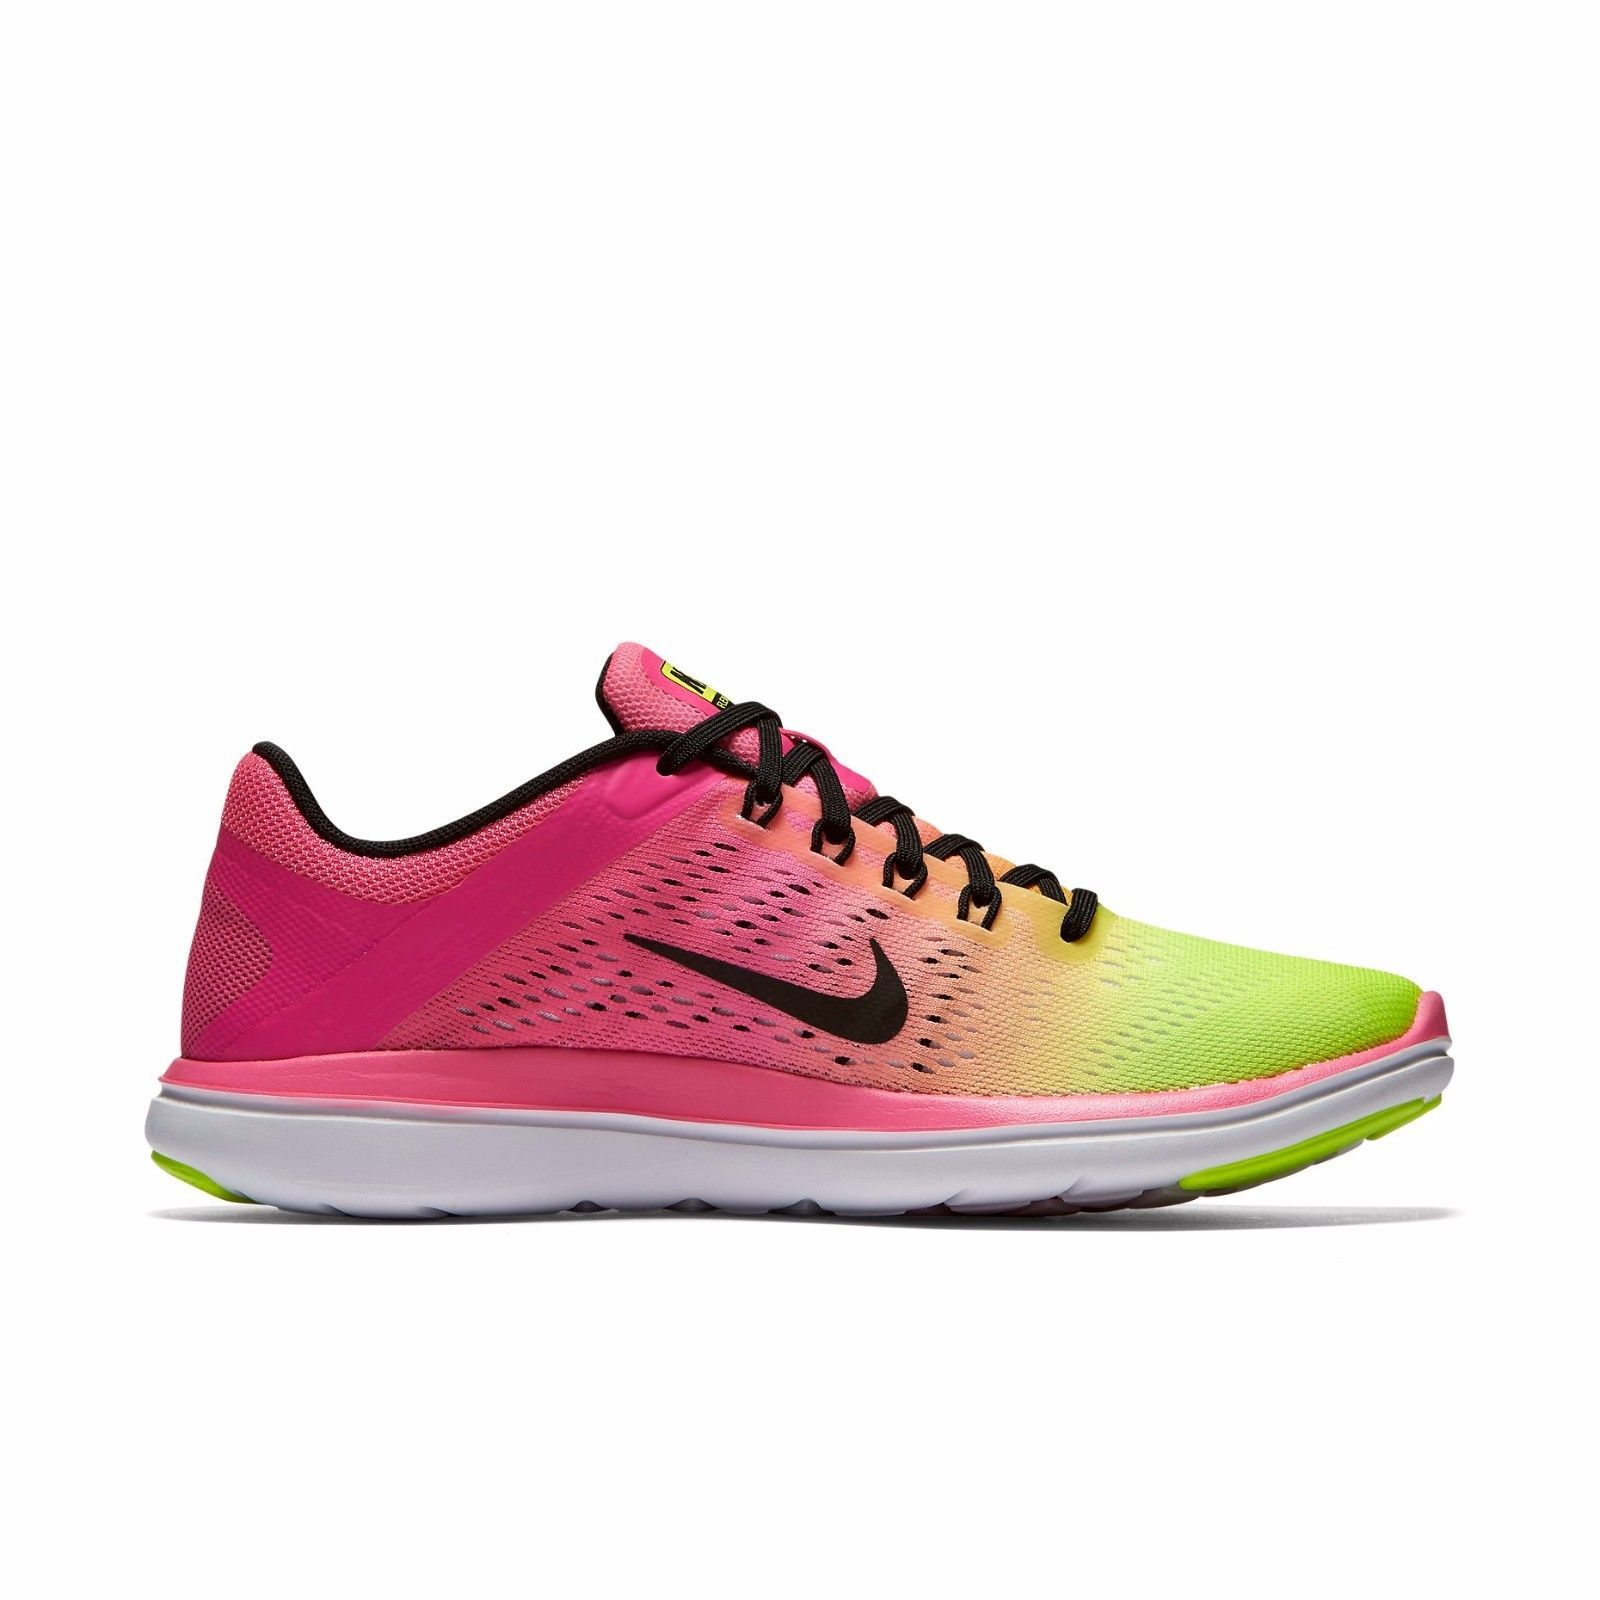 ad041aed66478 Women's Nike Flex Running Shoes NEW Volt/Pink and 25 similar items